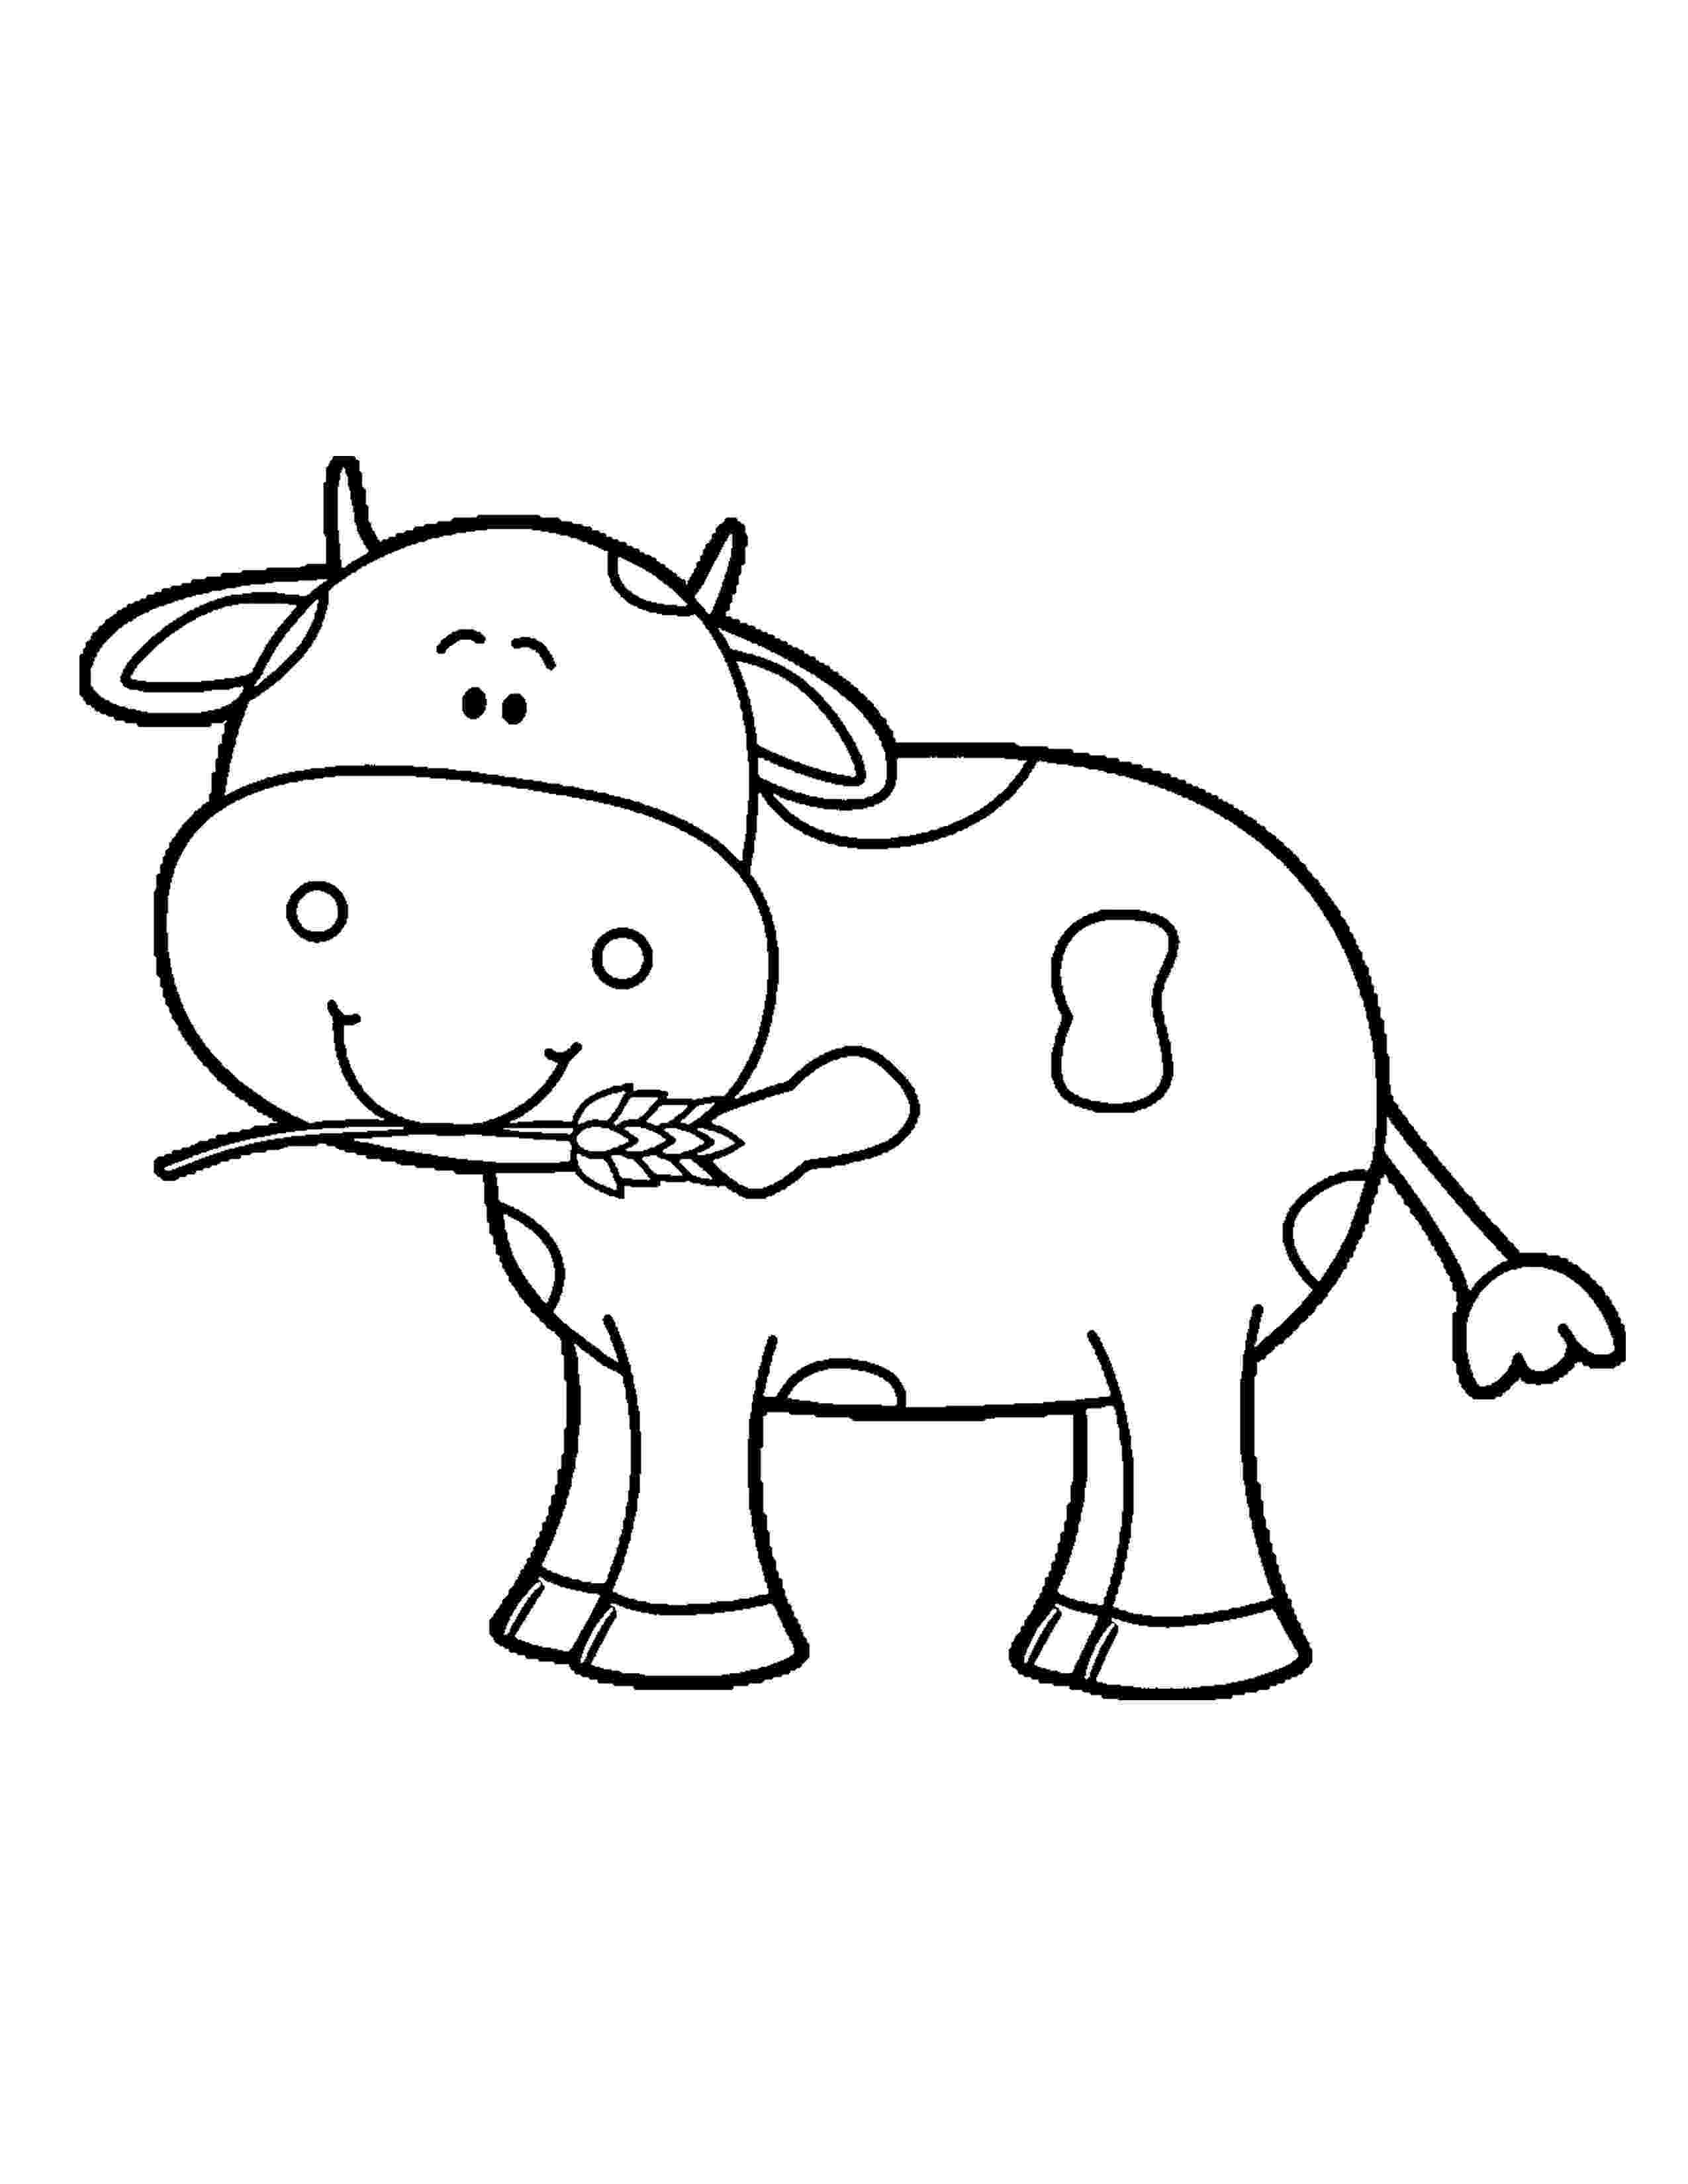 baby cow coloring pages cow coloring pages wecoloringpagecom baby coloring cow pages